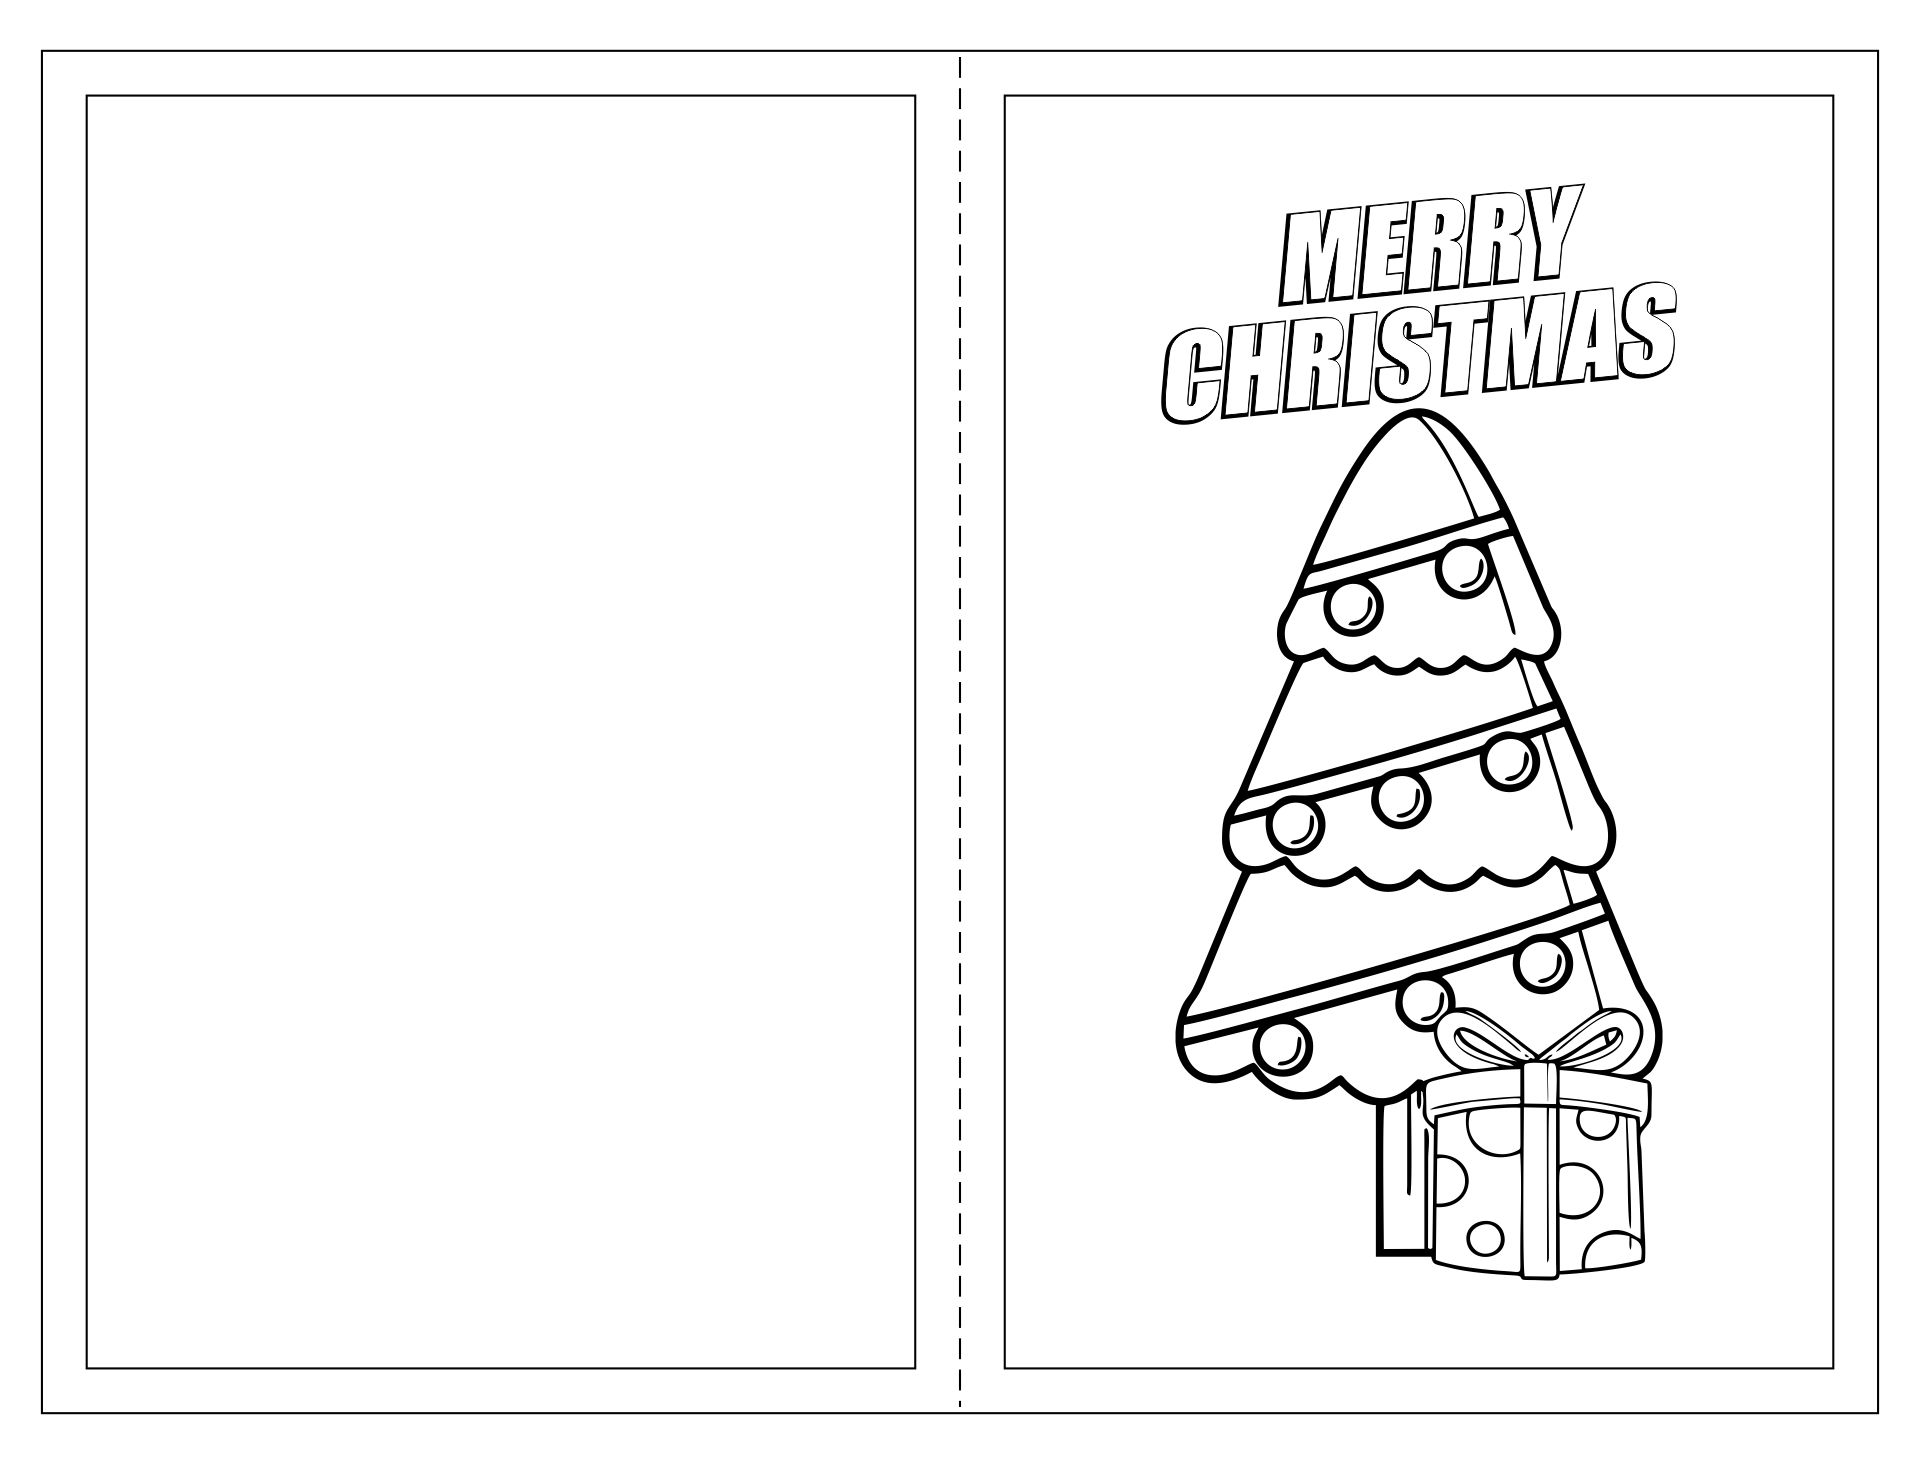 Printable Christmas Cards You Can Color